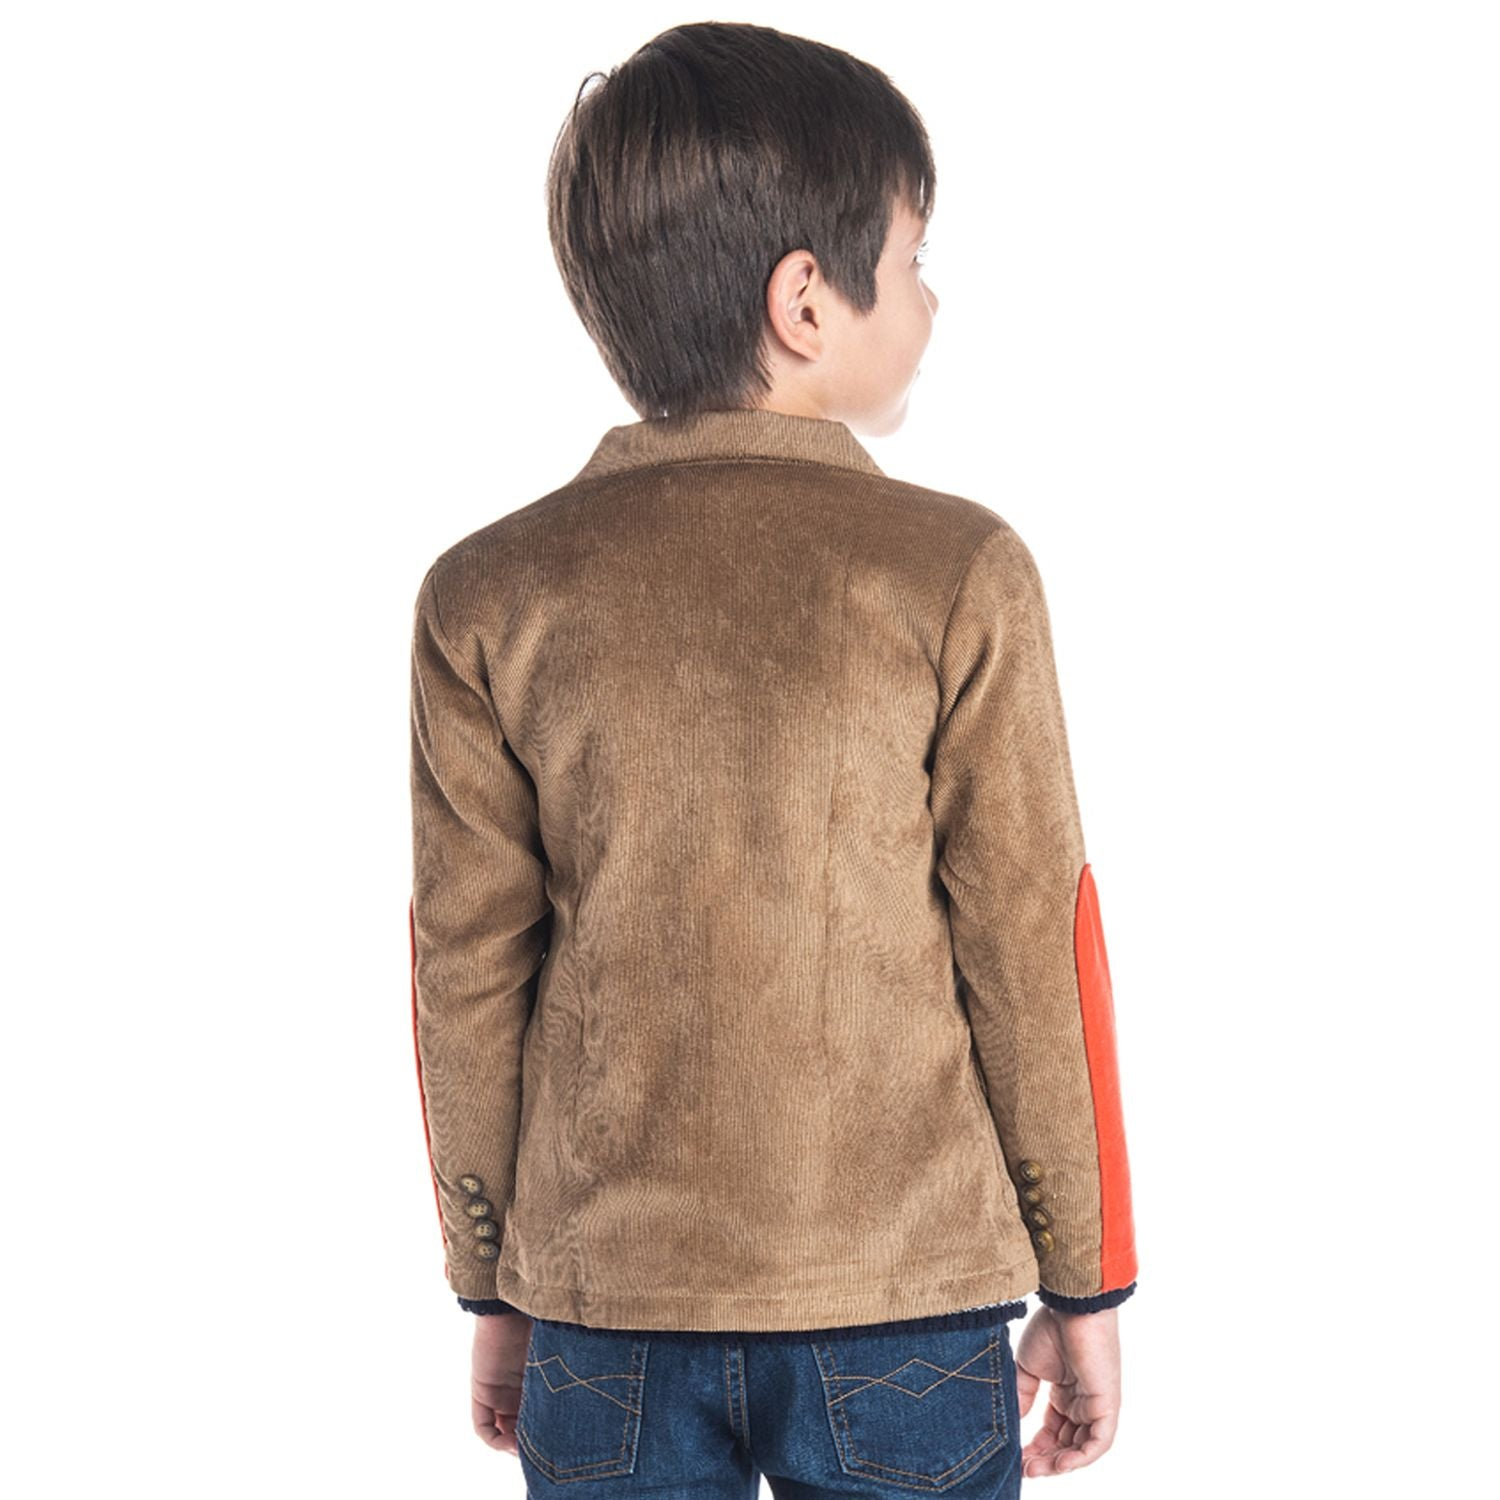 Cord Blazer for Boys